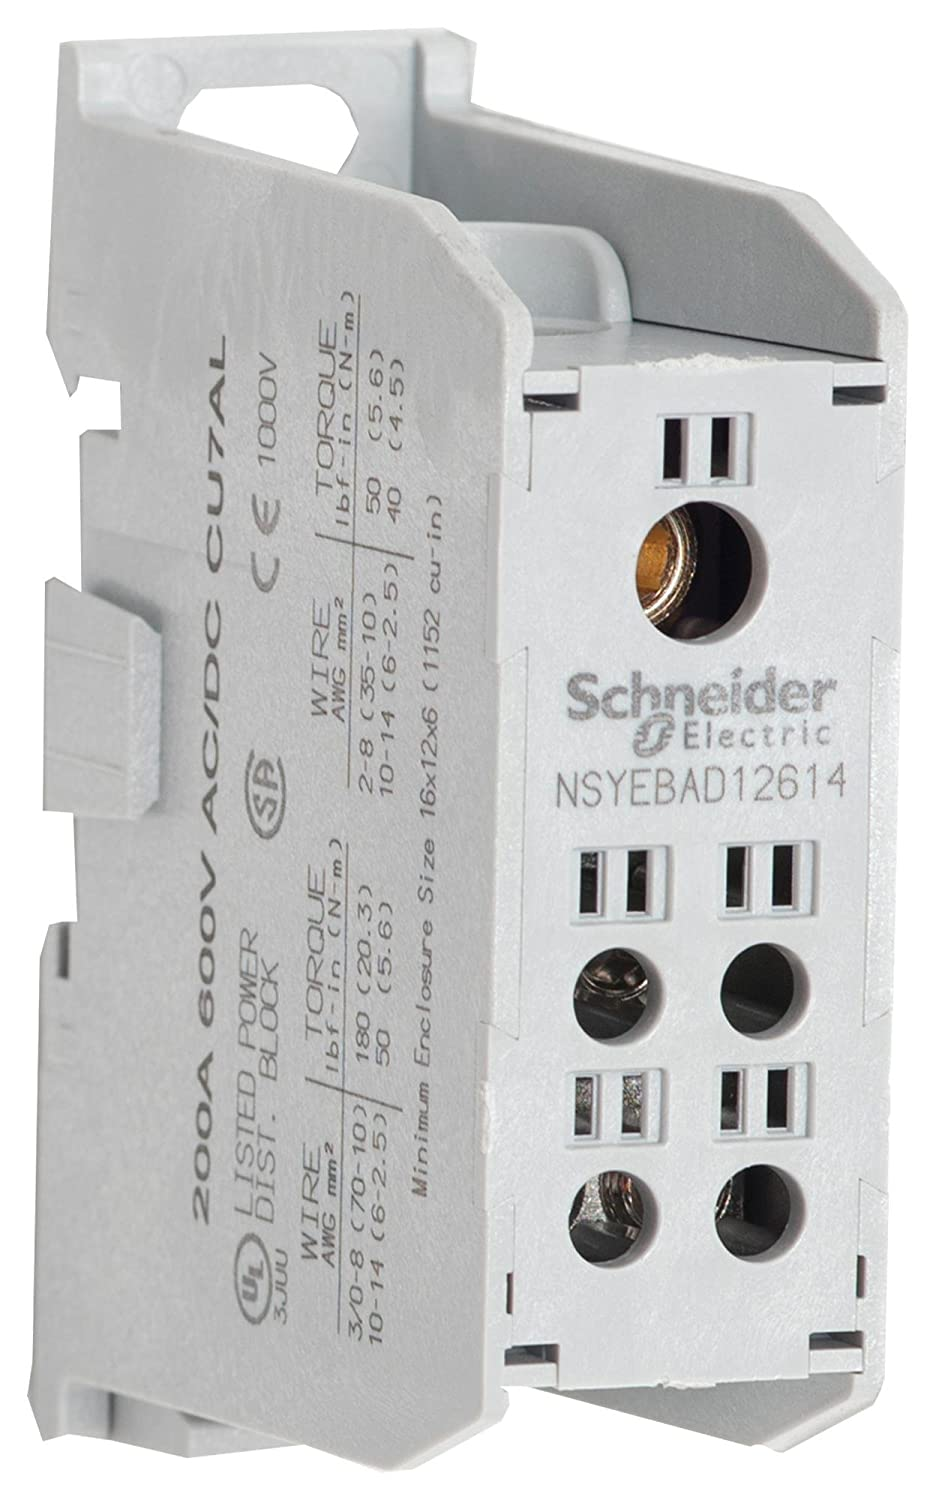 SQUARE D BY SCHNEIDER ELECTRIC, NSYEBAD12614, Panel Mount Barrier Terminal Block, 200 A, 600 V, 5 Pole, 1, 3 AWG